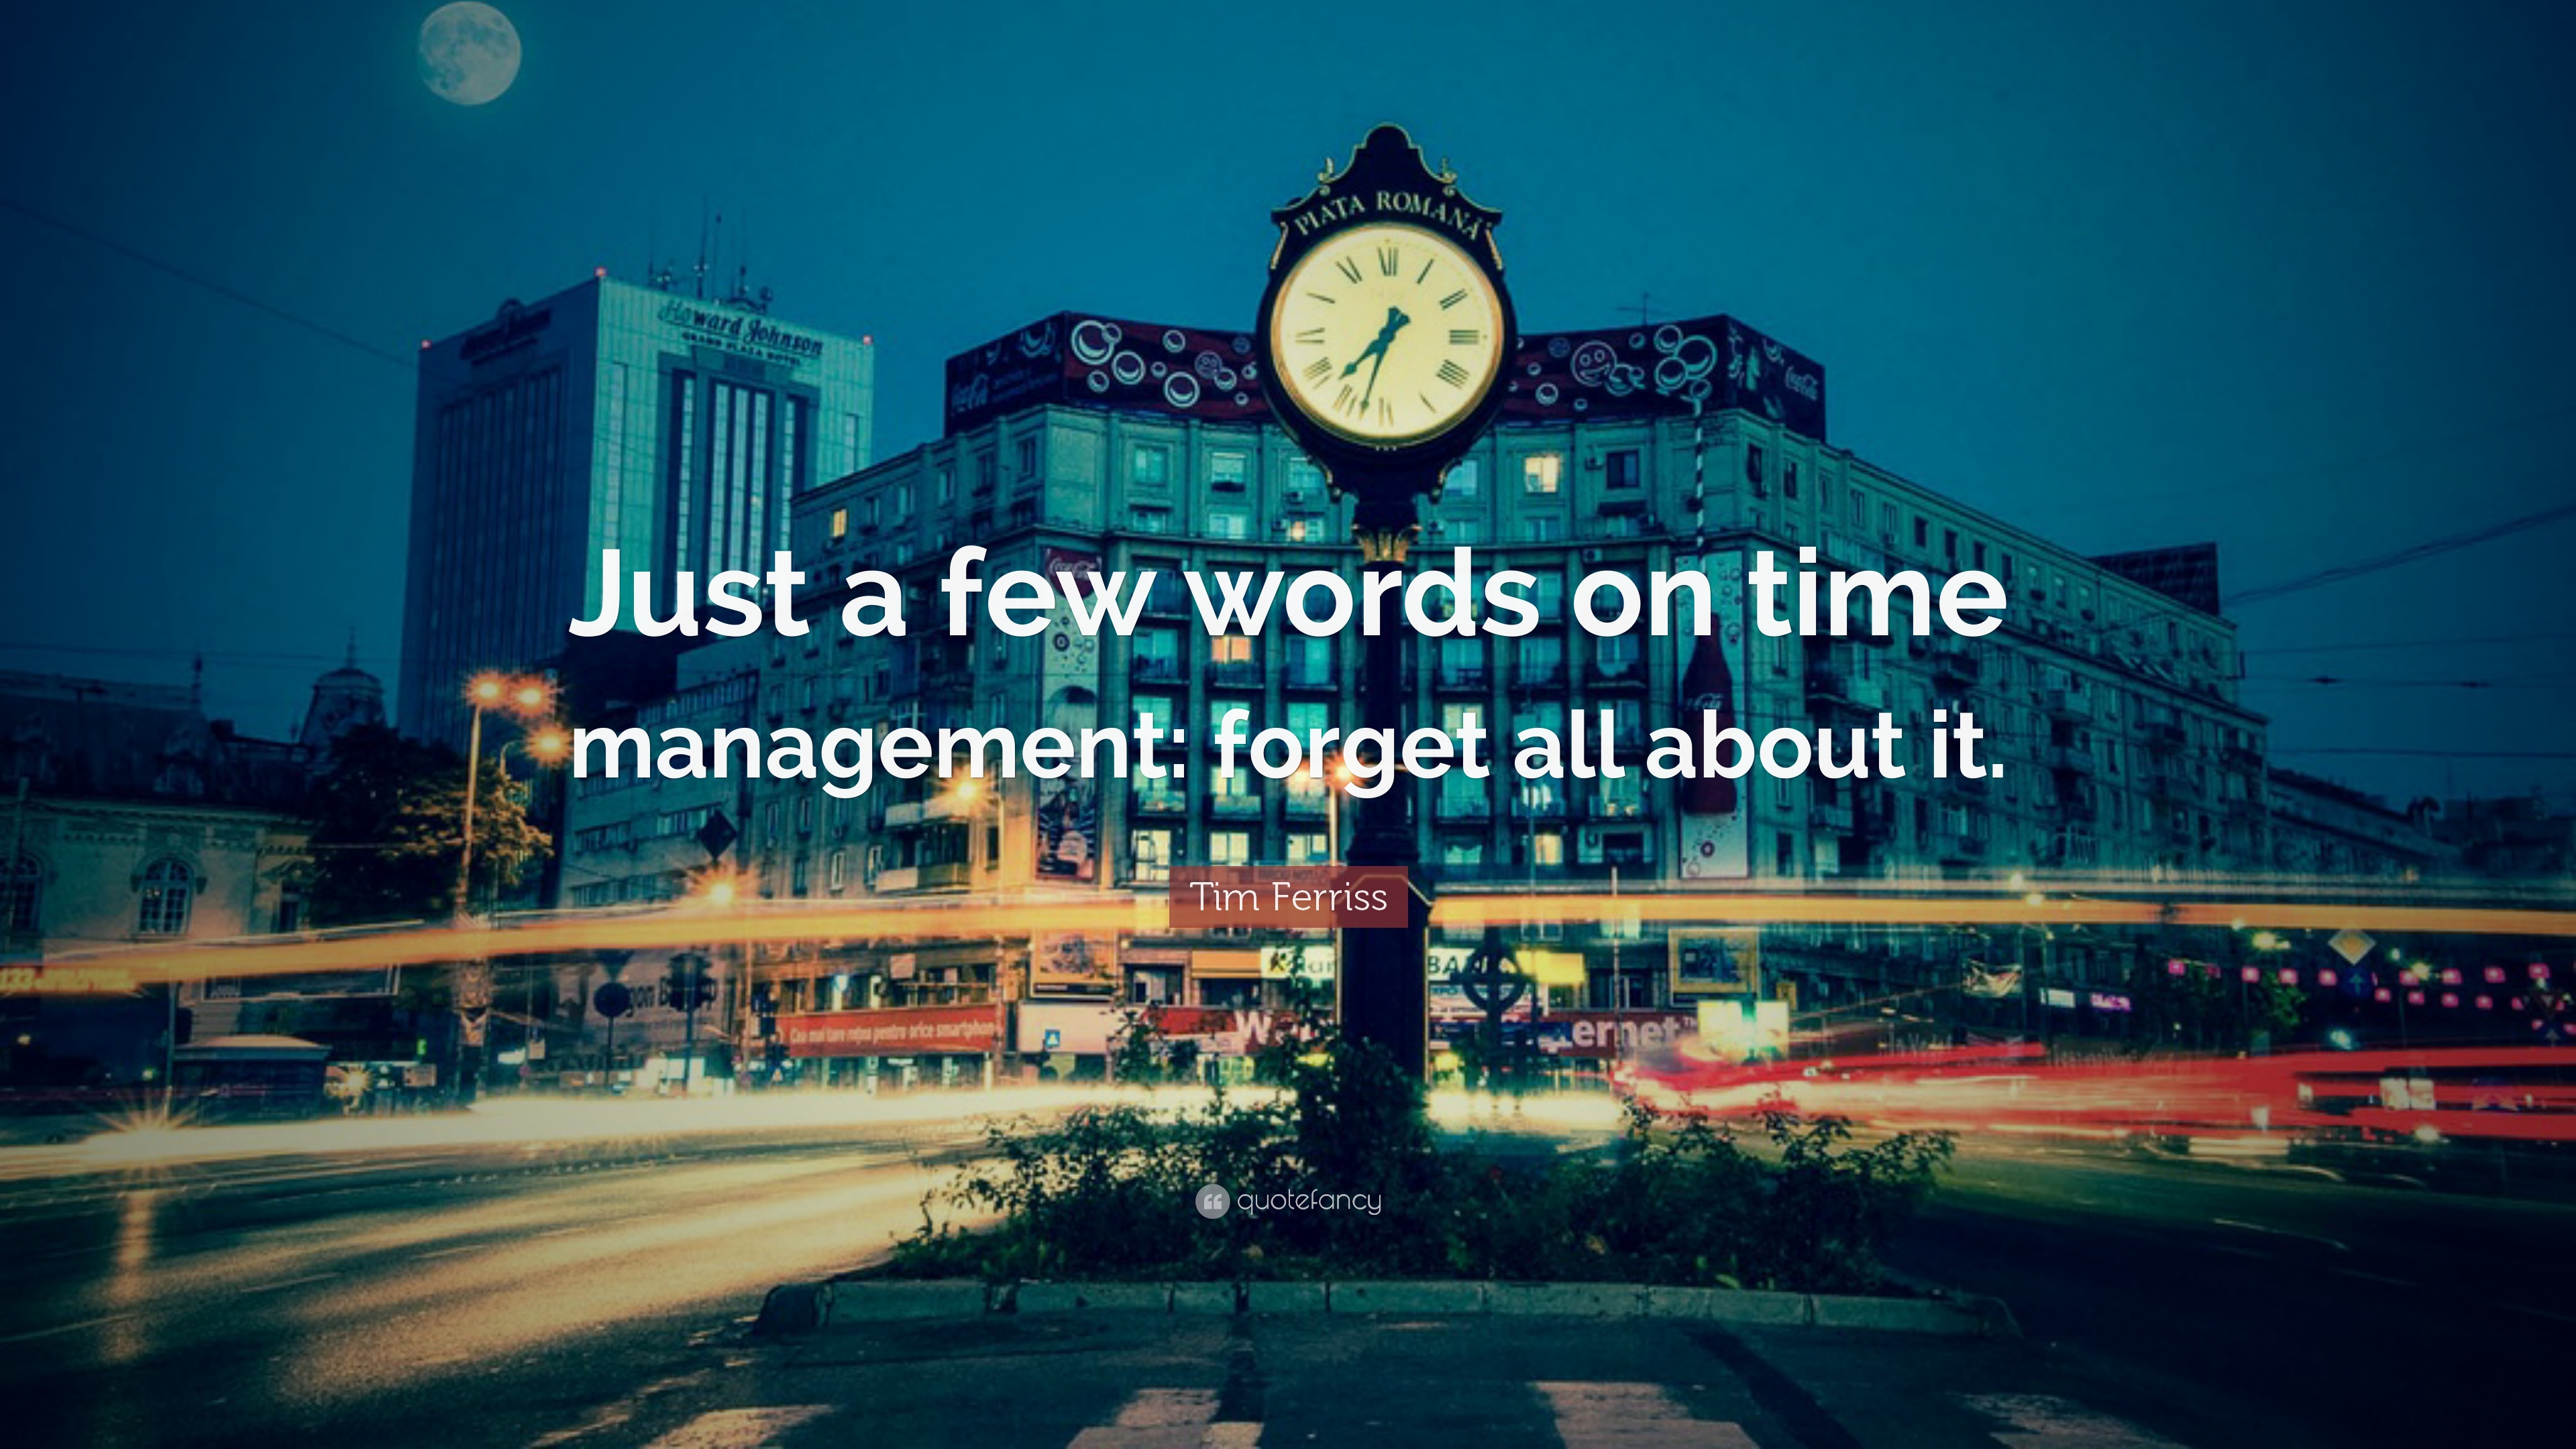 Time Quotes: U201cJust A Few Words On Time Management: Forget All About It